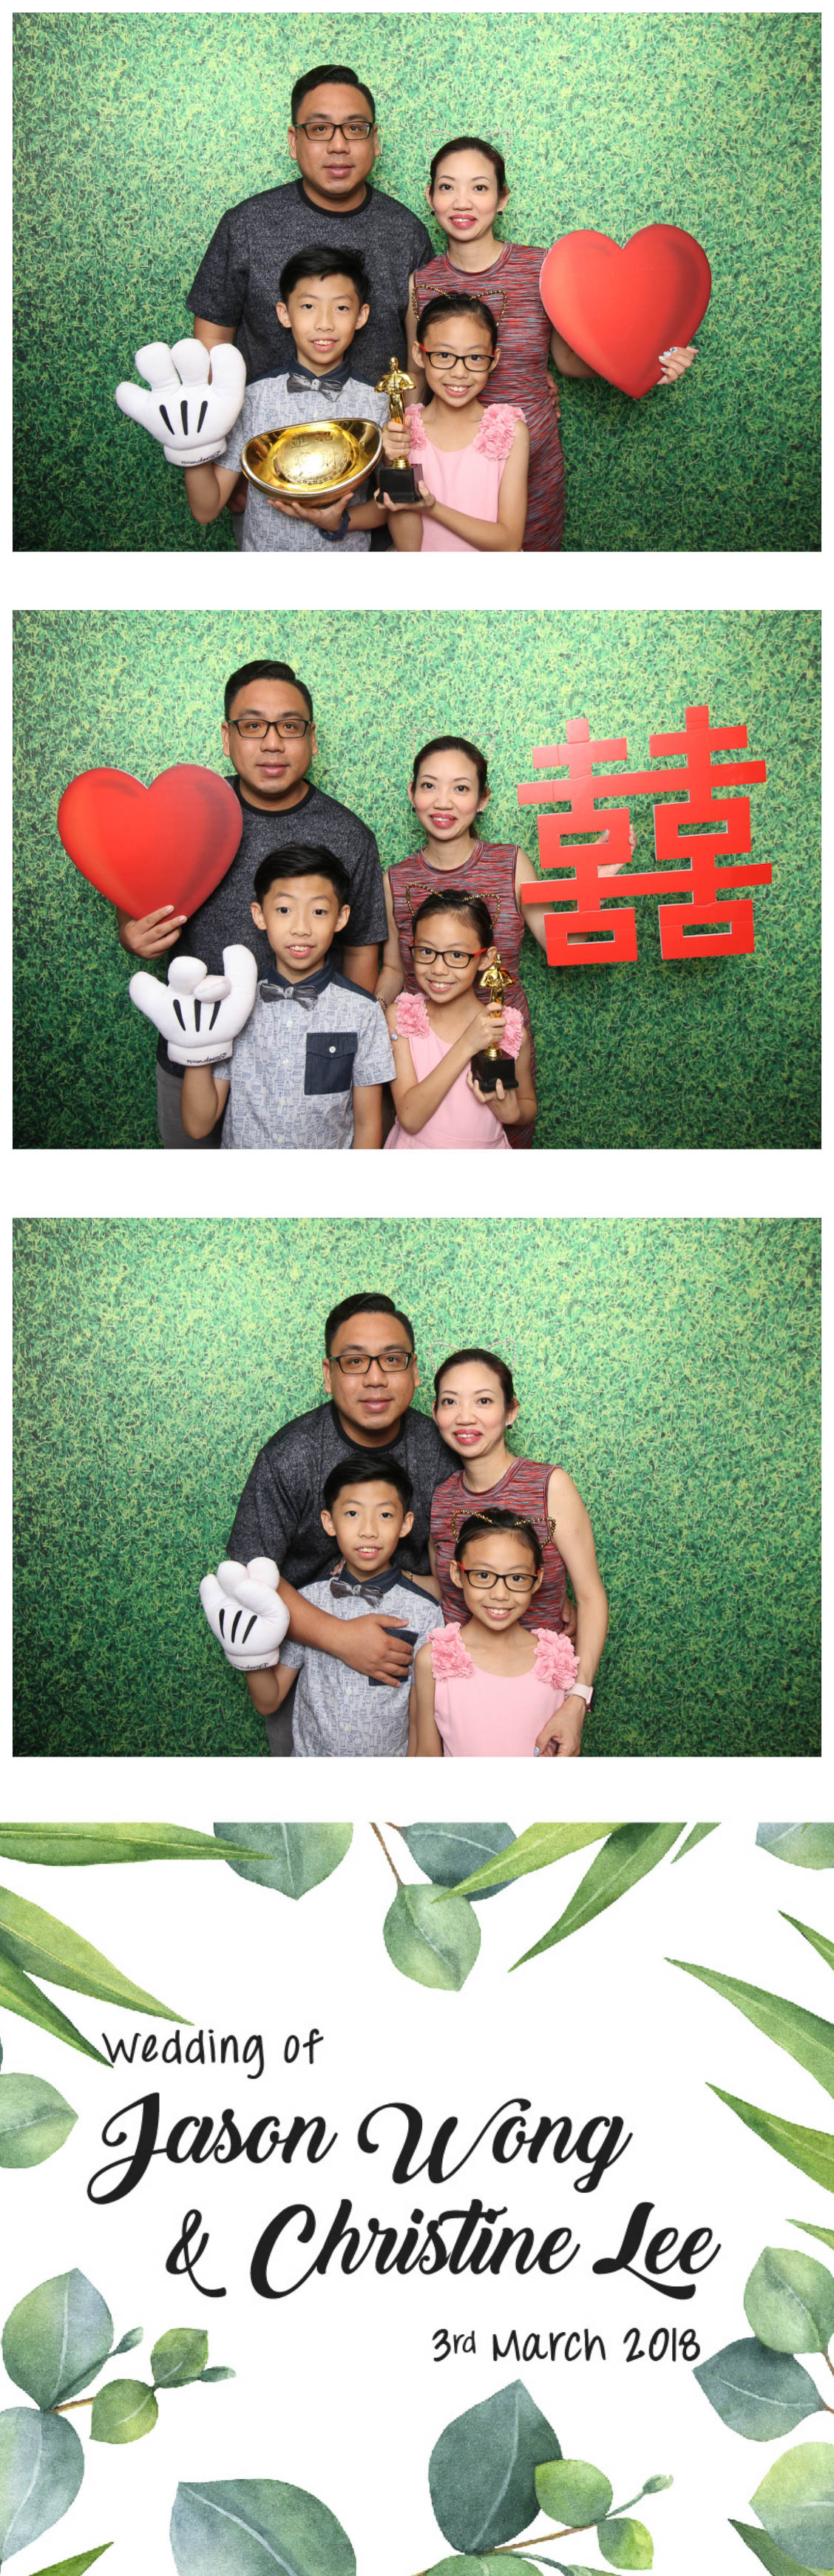 Photobooth 0302-17